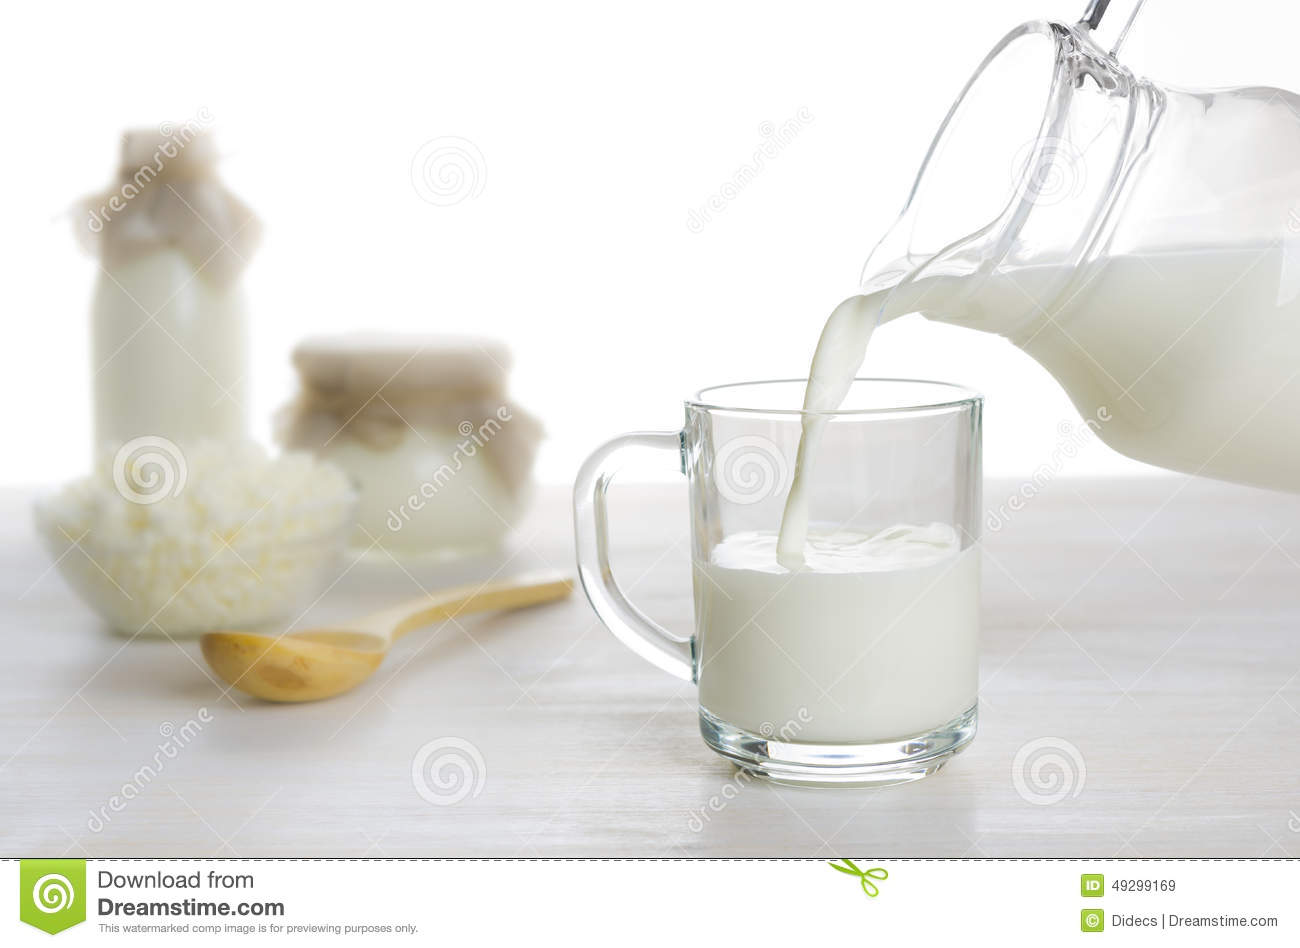 Pouring milk into the glass on dairy products background